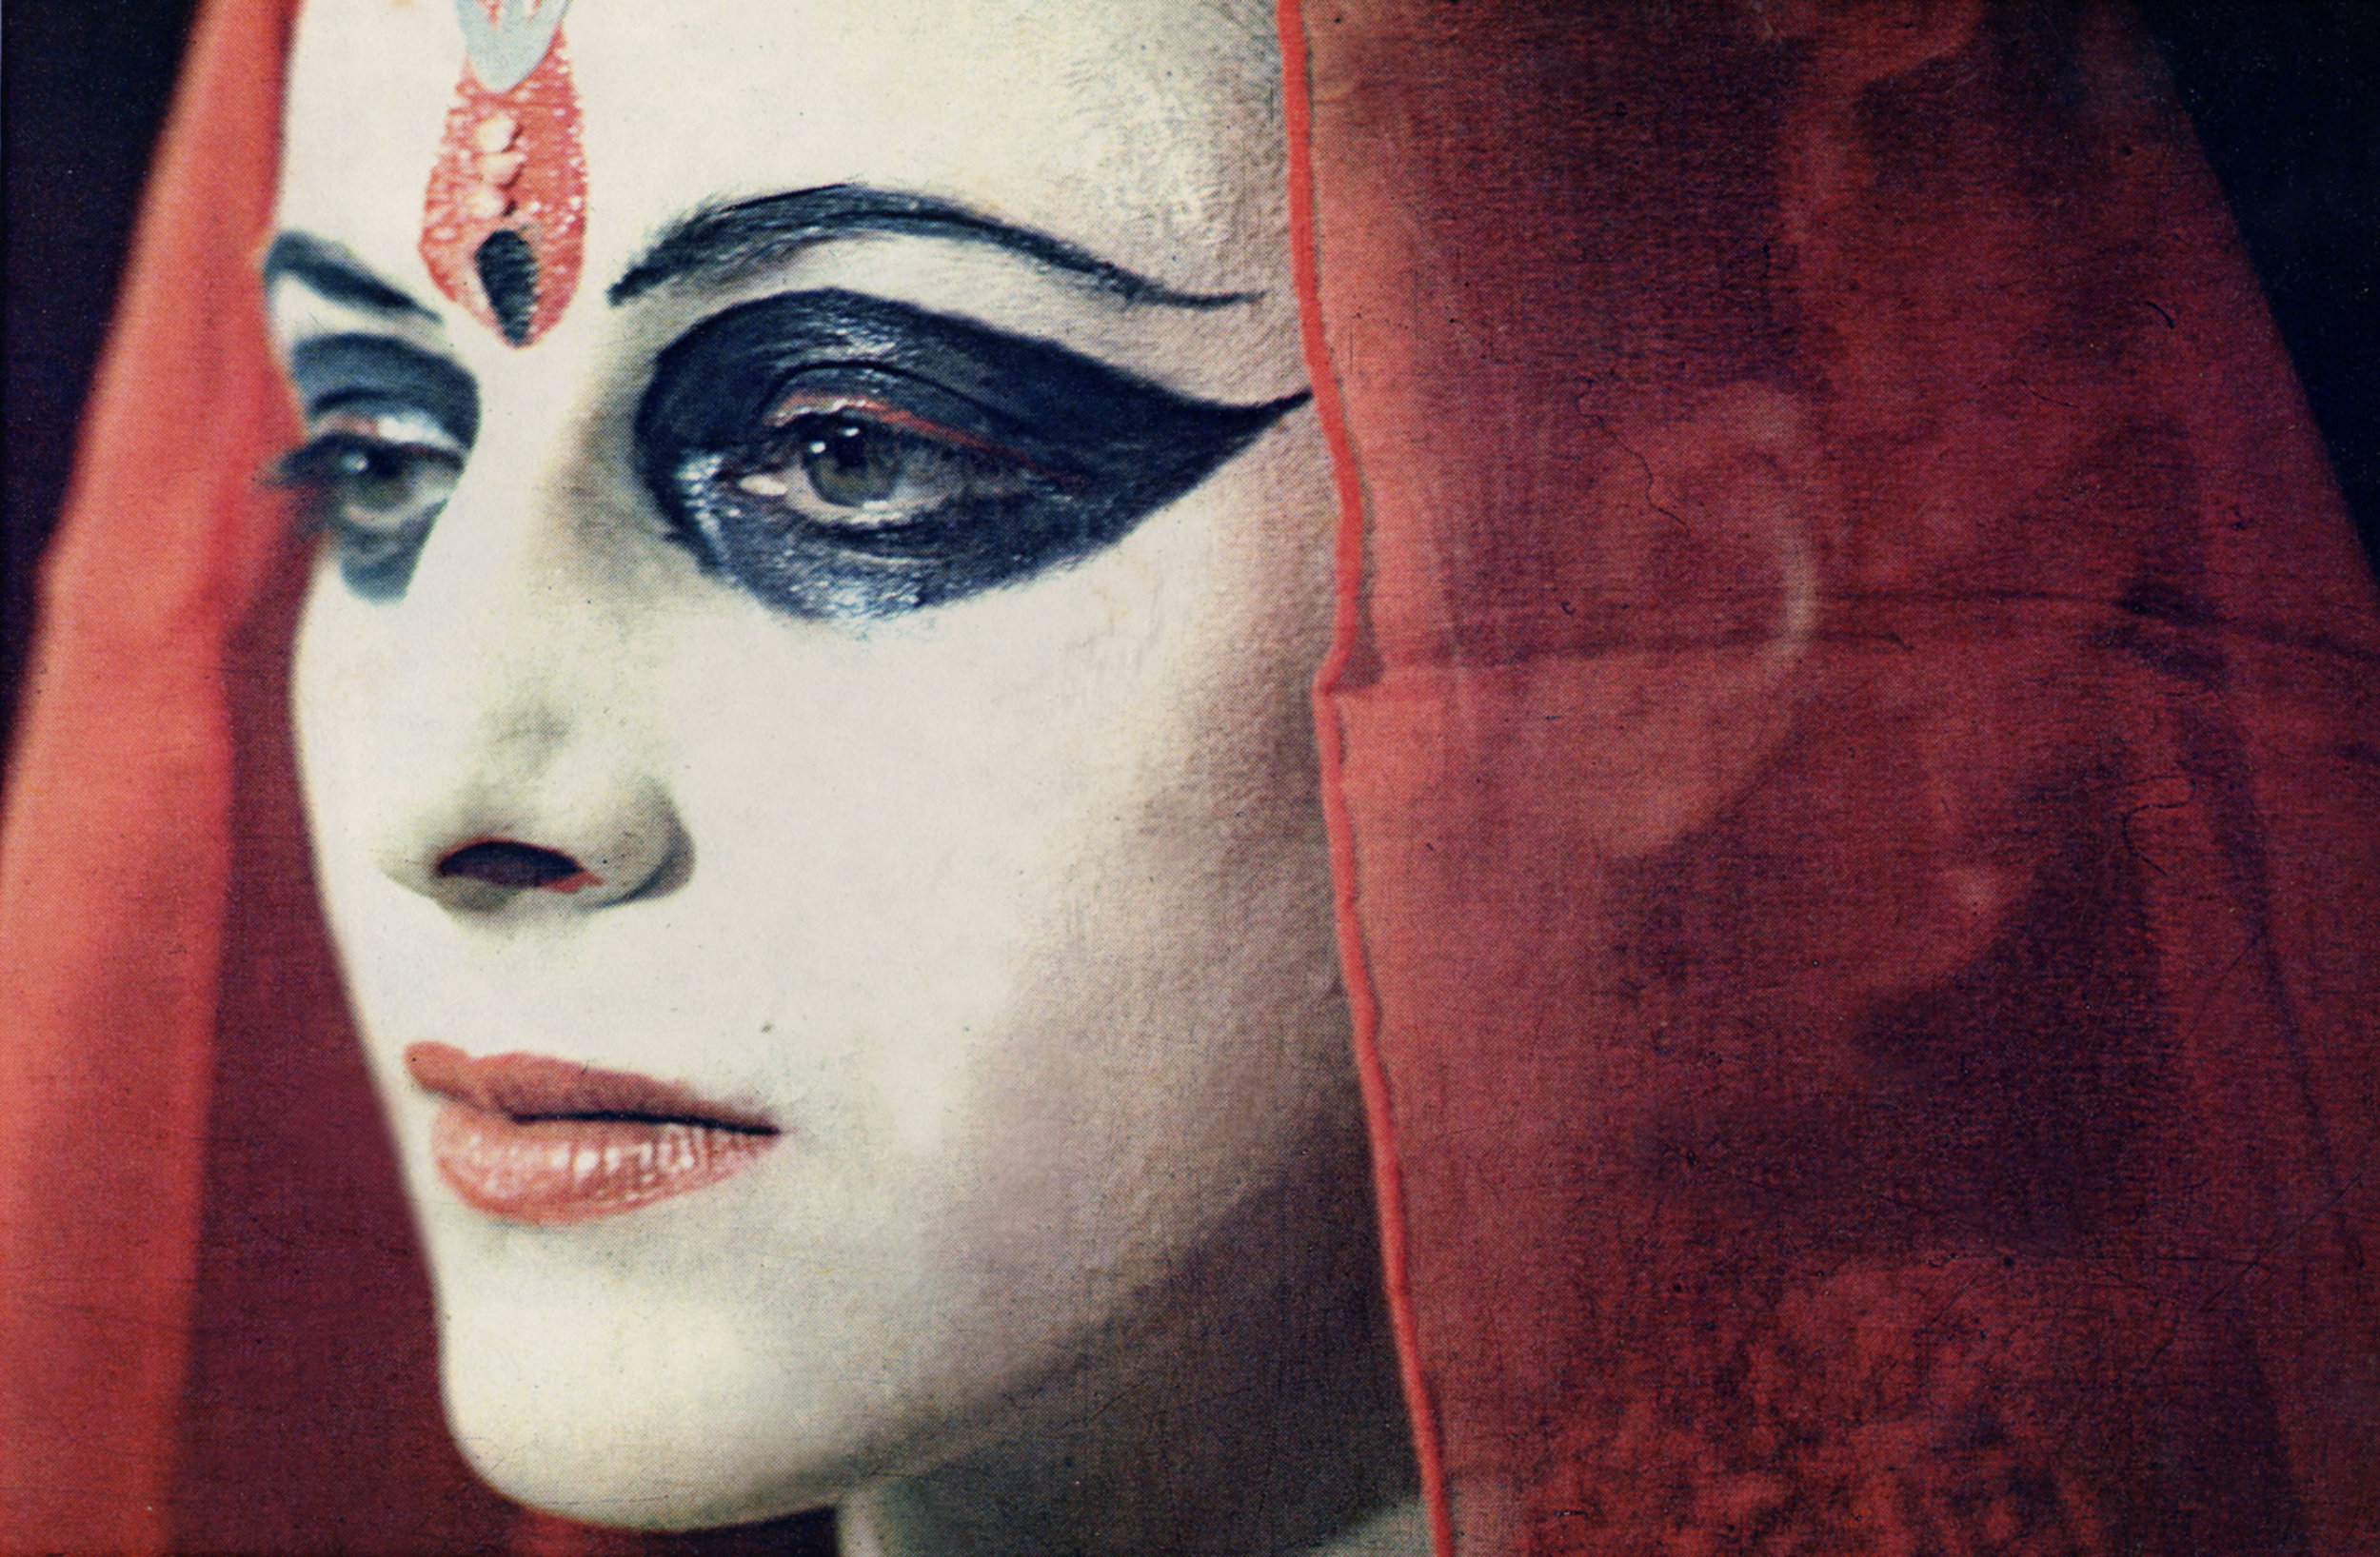 Penny Slinger Penny as Shakti Photo by Nik Douglas, 1976 © Courtesy Richard Saltoun Gallery, London